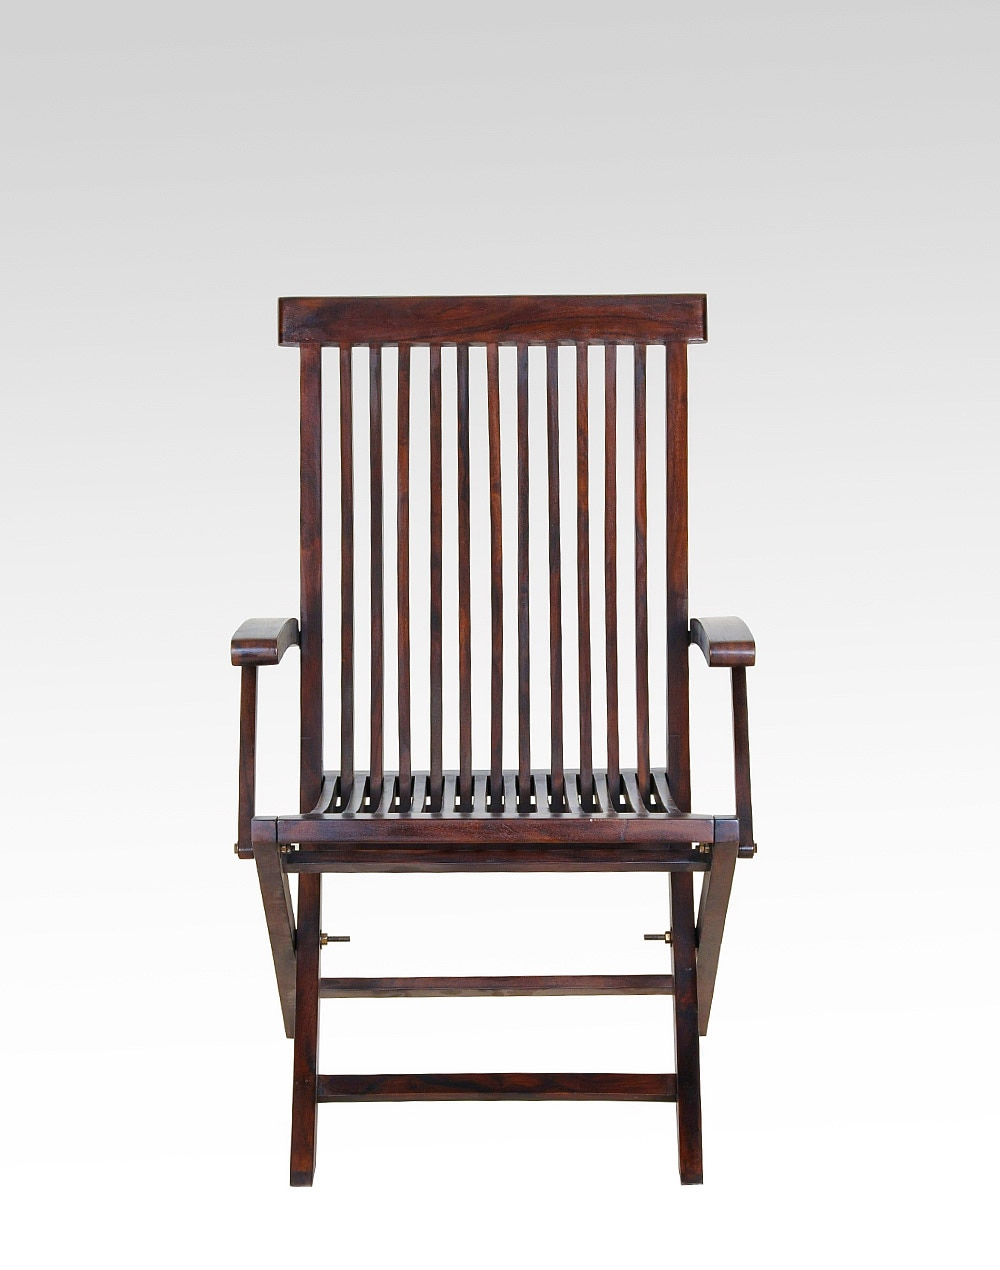 Sheesham Wood Bali Folding Chair Intended For Bali Brown Rocking Chairs (View 16 of 20)